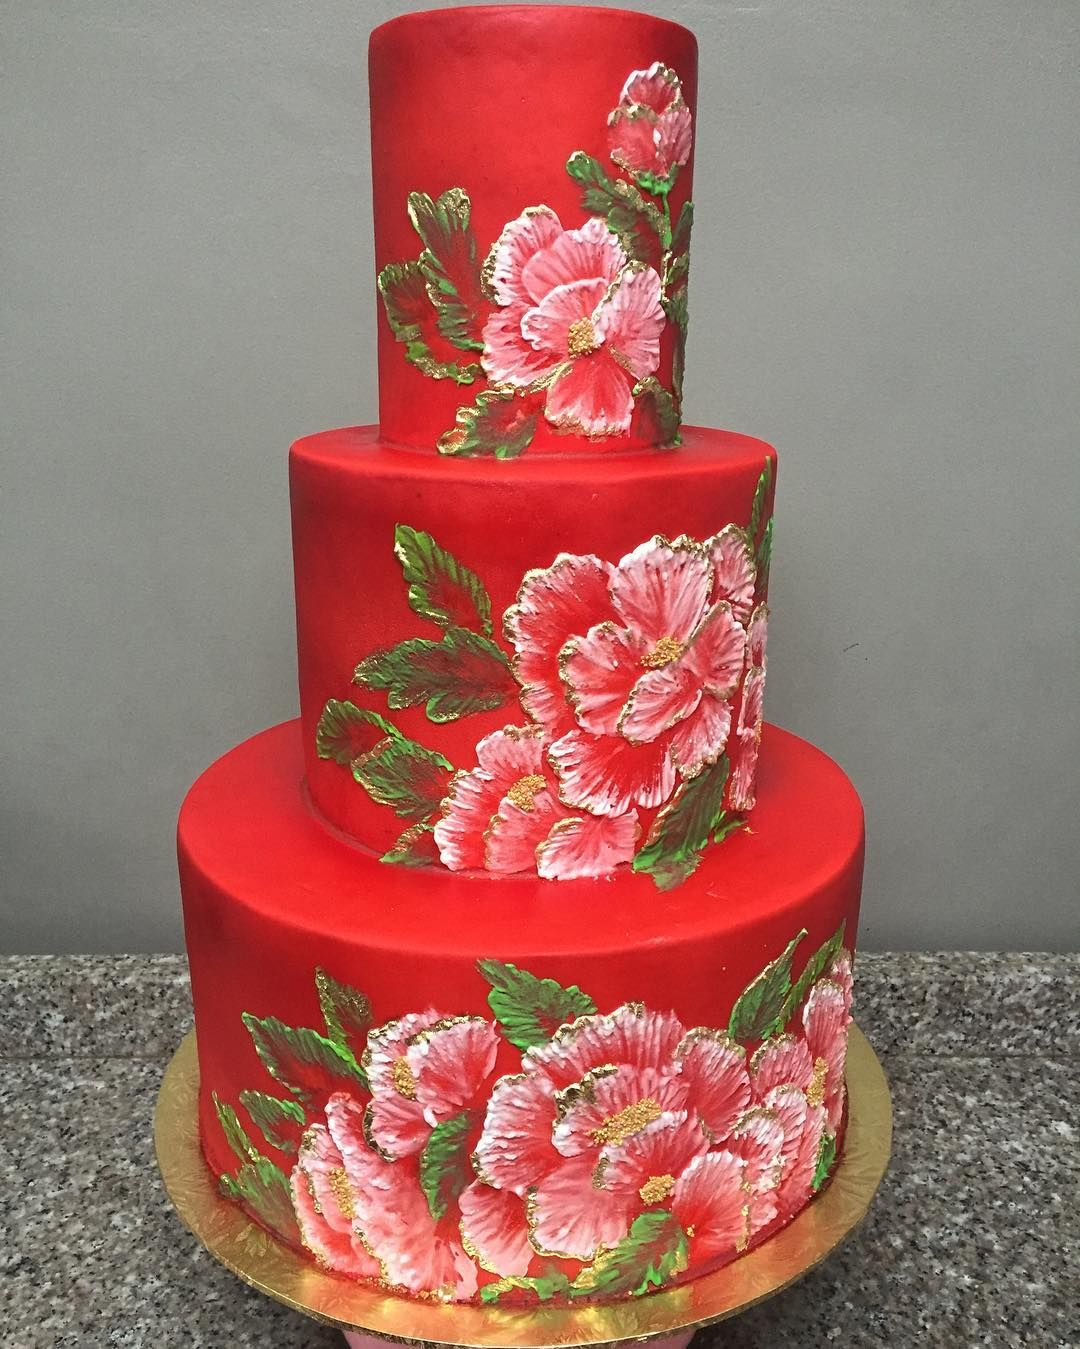 Another Peonies Chinese Themed Birthday Cake Upon Request Cakesbymannix Cakesforallocassions Cakeartist Peonies Chine Cake Themed Cakes Celebration Cakes